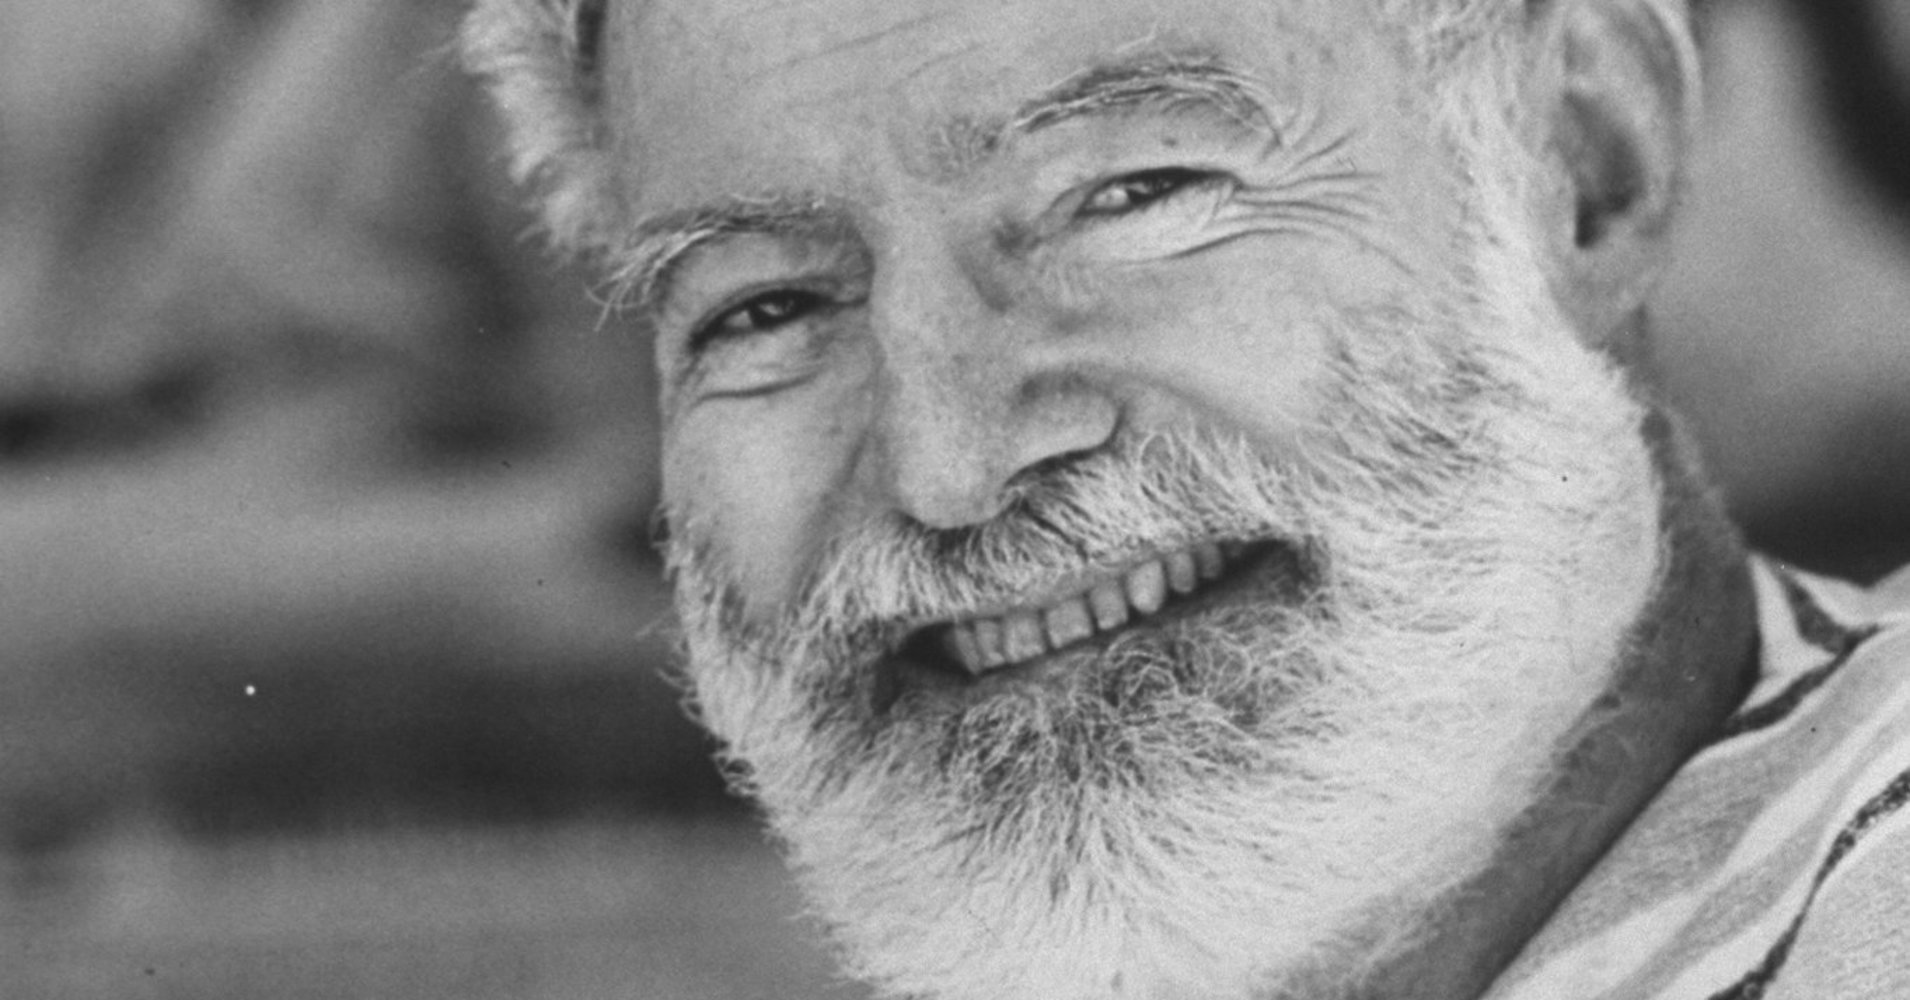 Ernest Hemingway Story From 1956 To Be Published For The First Time